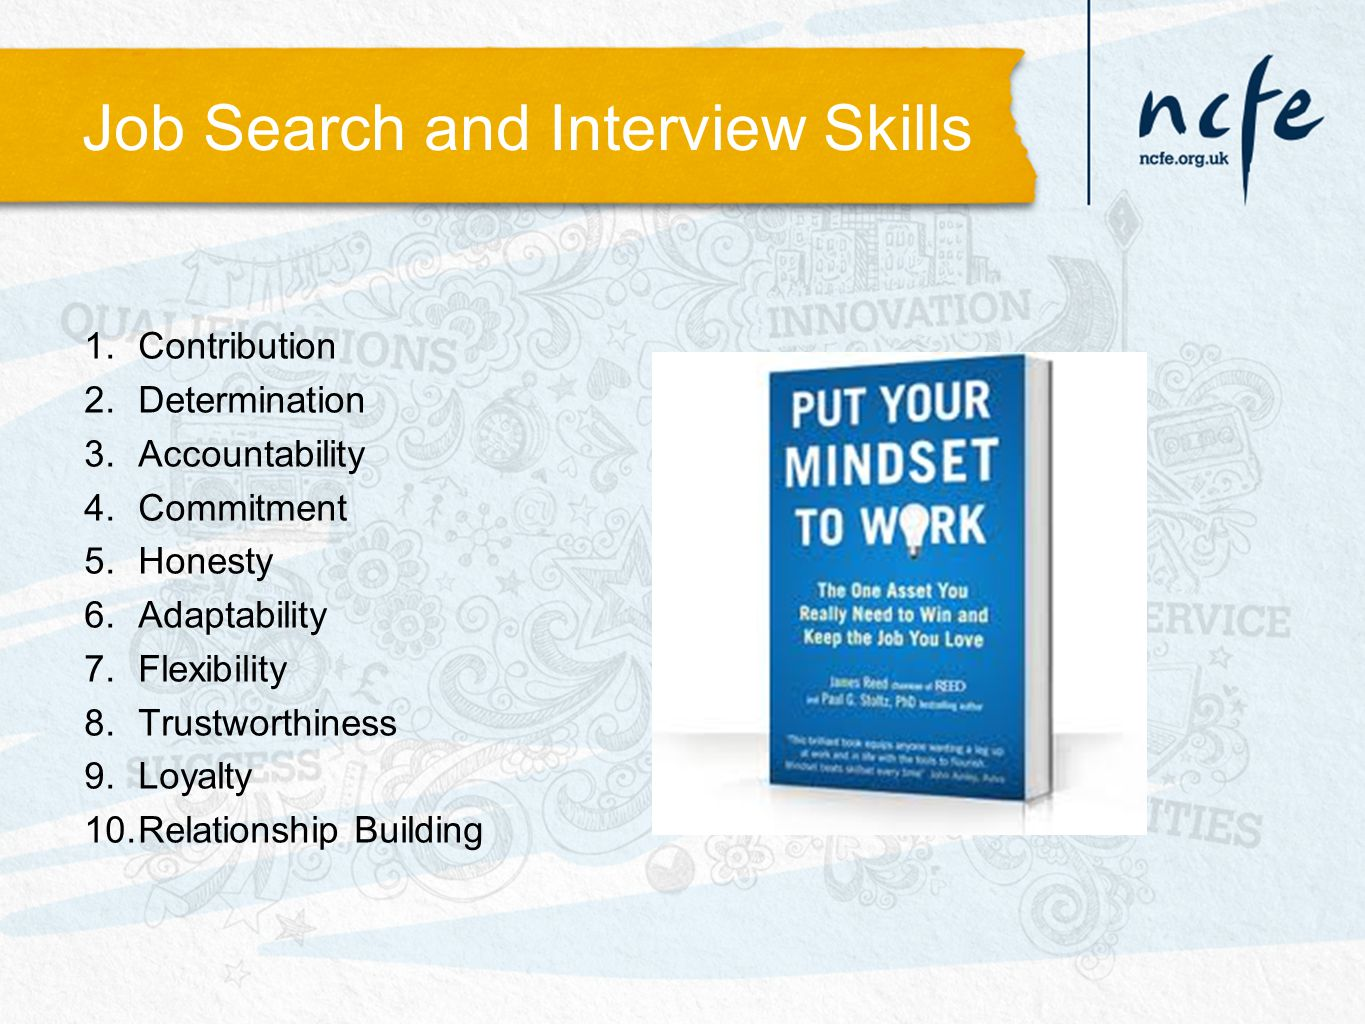 Job Search and Interview Skills 1.Contribution 2.Determination 3.Accountability 4.Commitment 5.Honesty 6.Adaptability 7.Flexibility 8.Trustworthiness